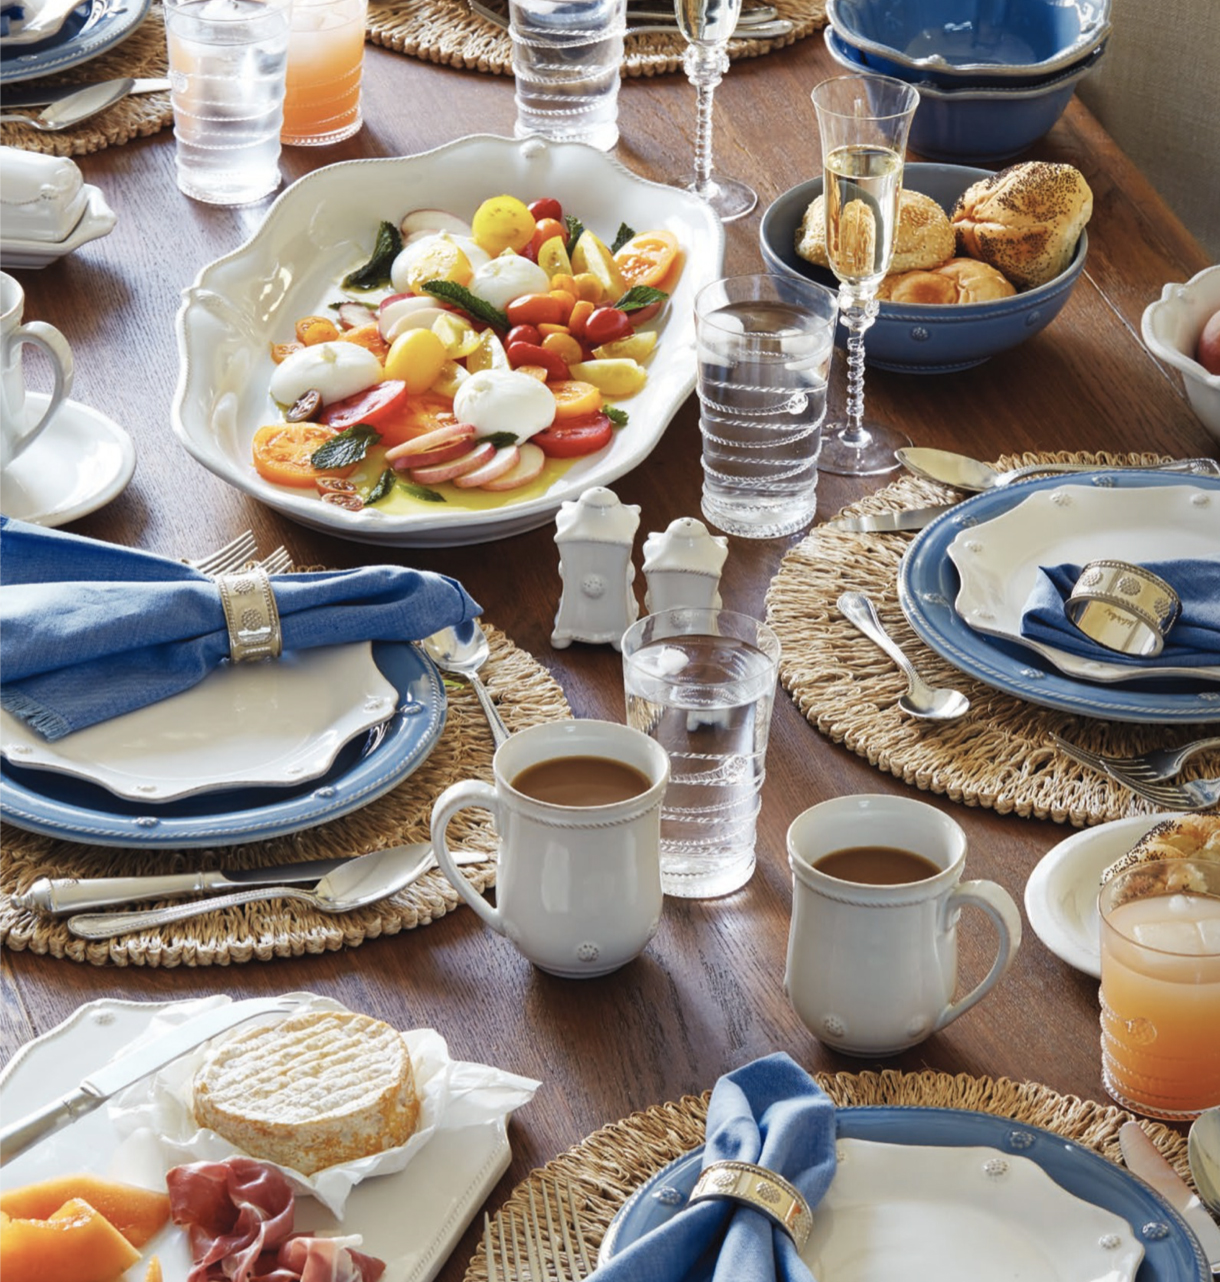 JULISKA Berry & Thread Chambray dinnerware